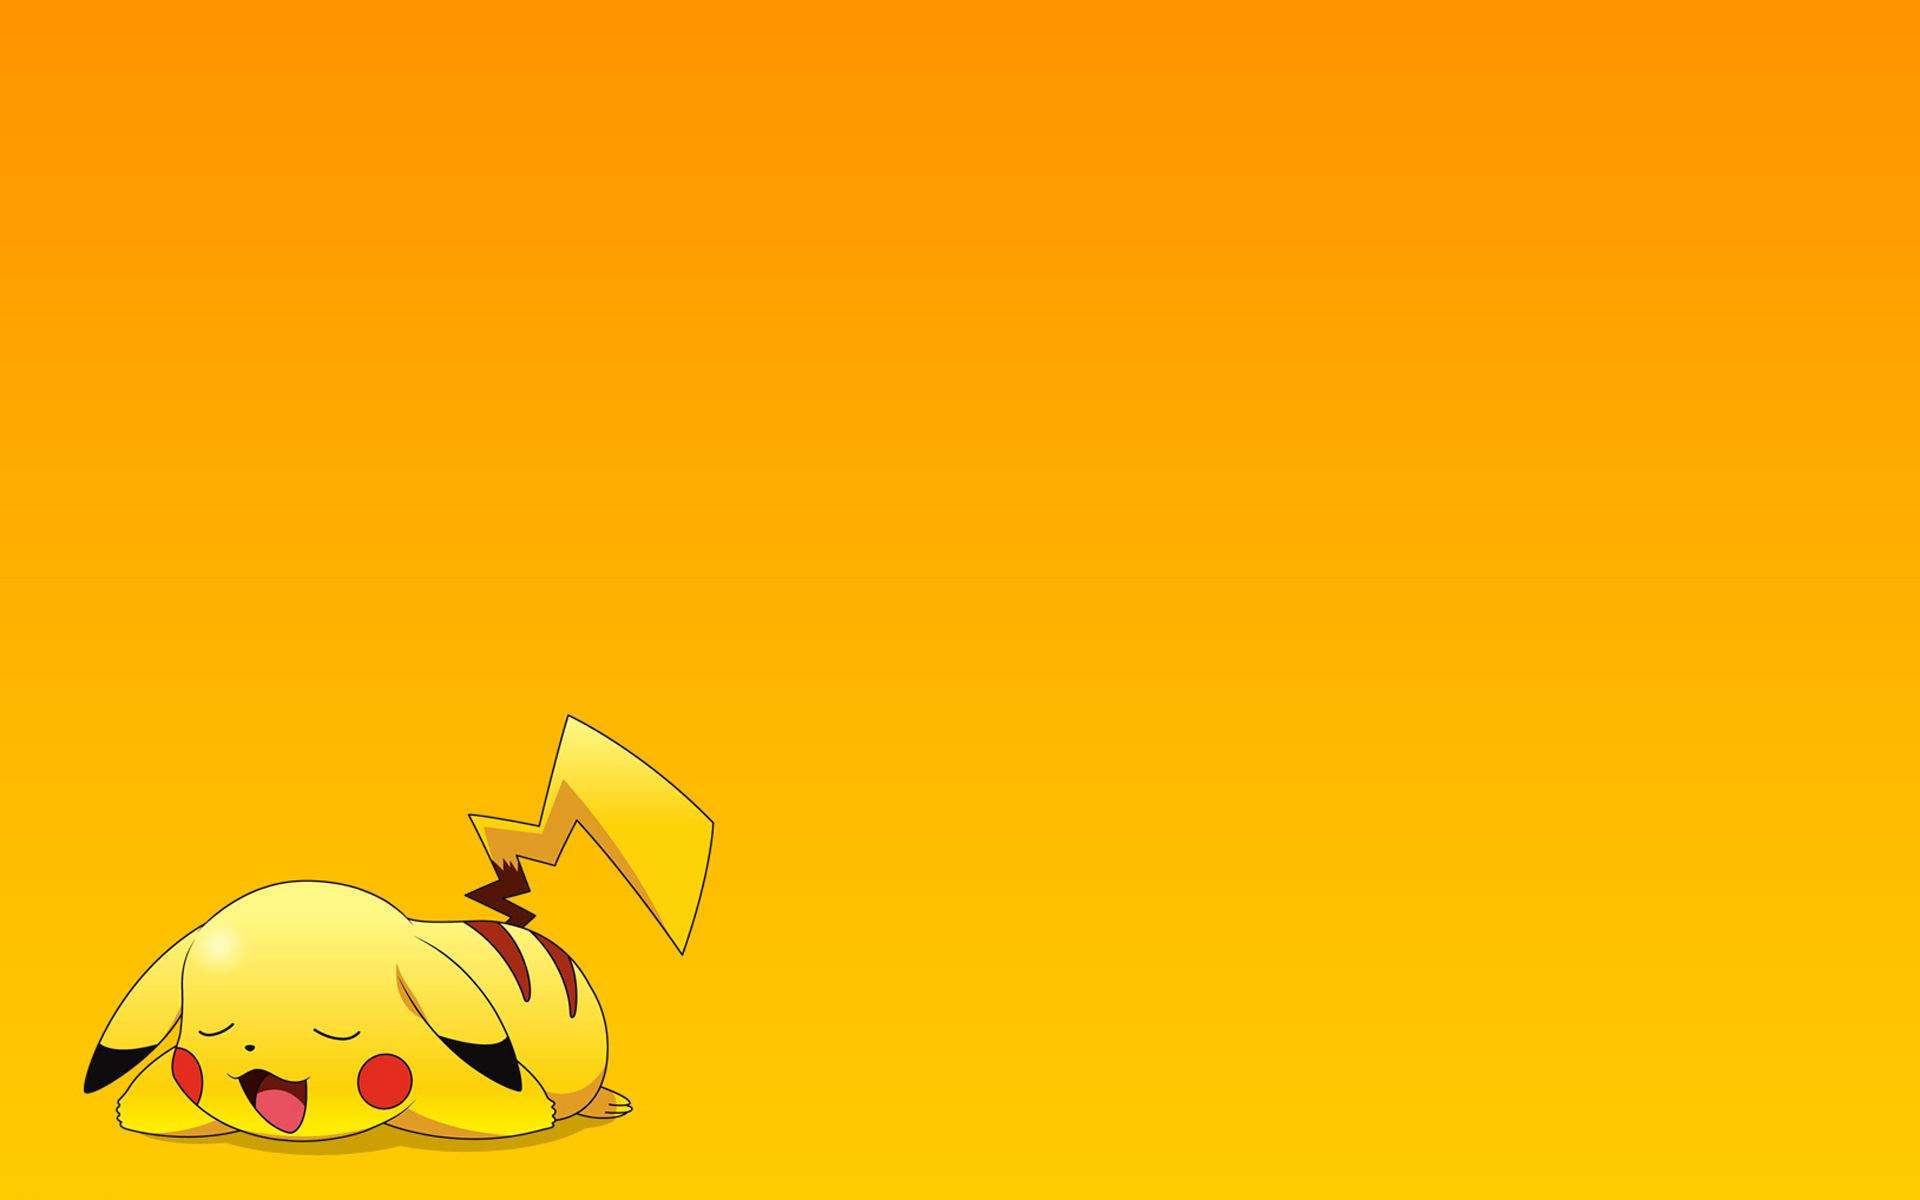 ... Pokemon Pikachu Background Wallpaper ...